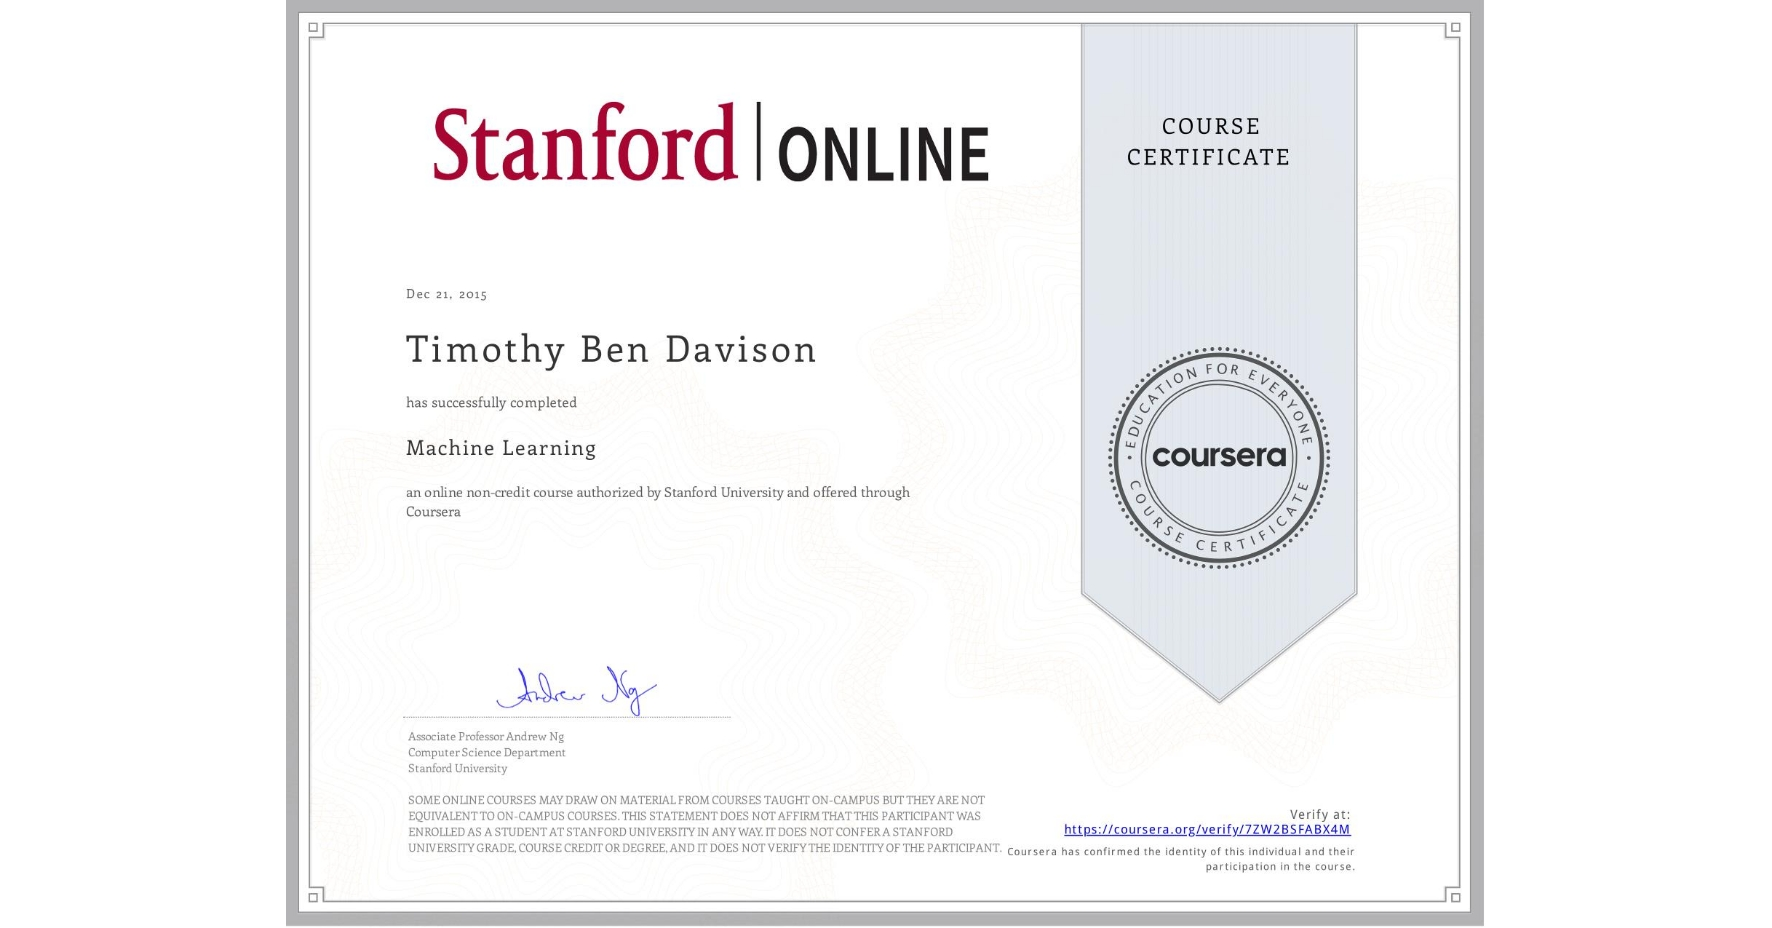 View certificate for Timothy Ben Davison, Machine Learning, an online non-credit course authorized by Stanford University and offered through Coursera